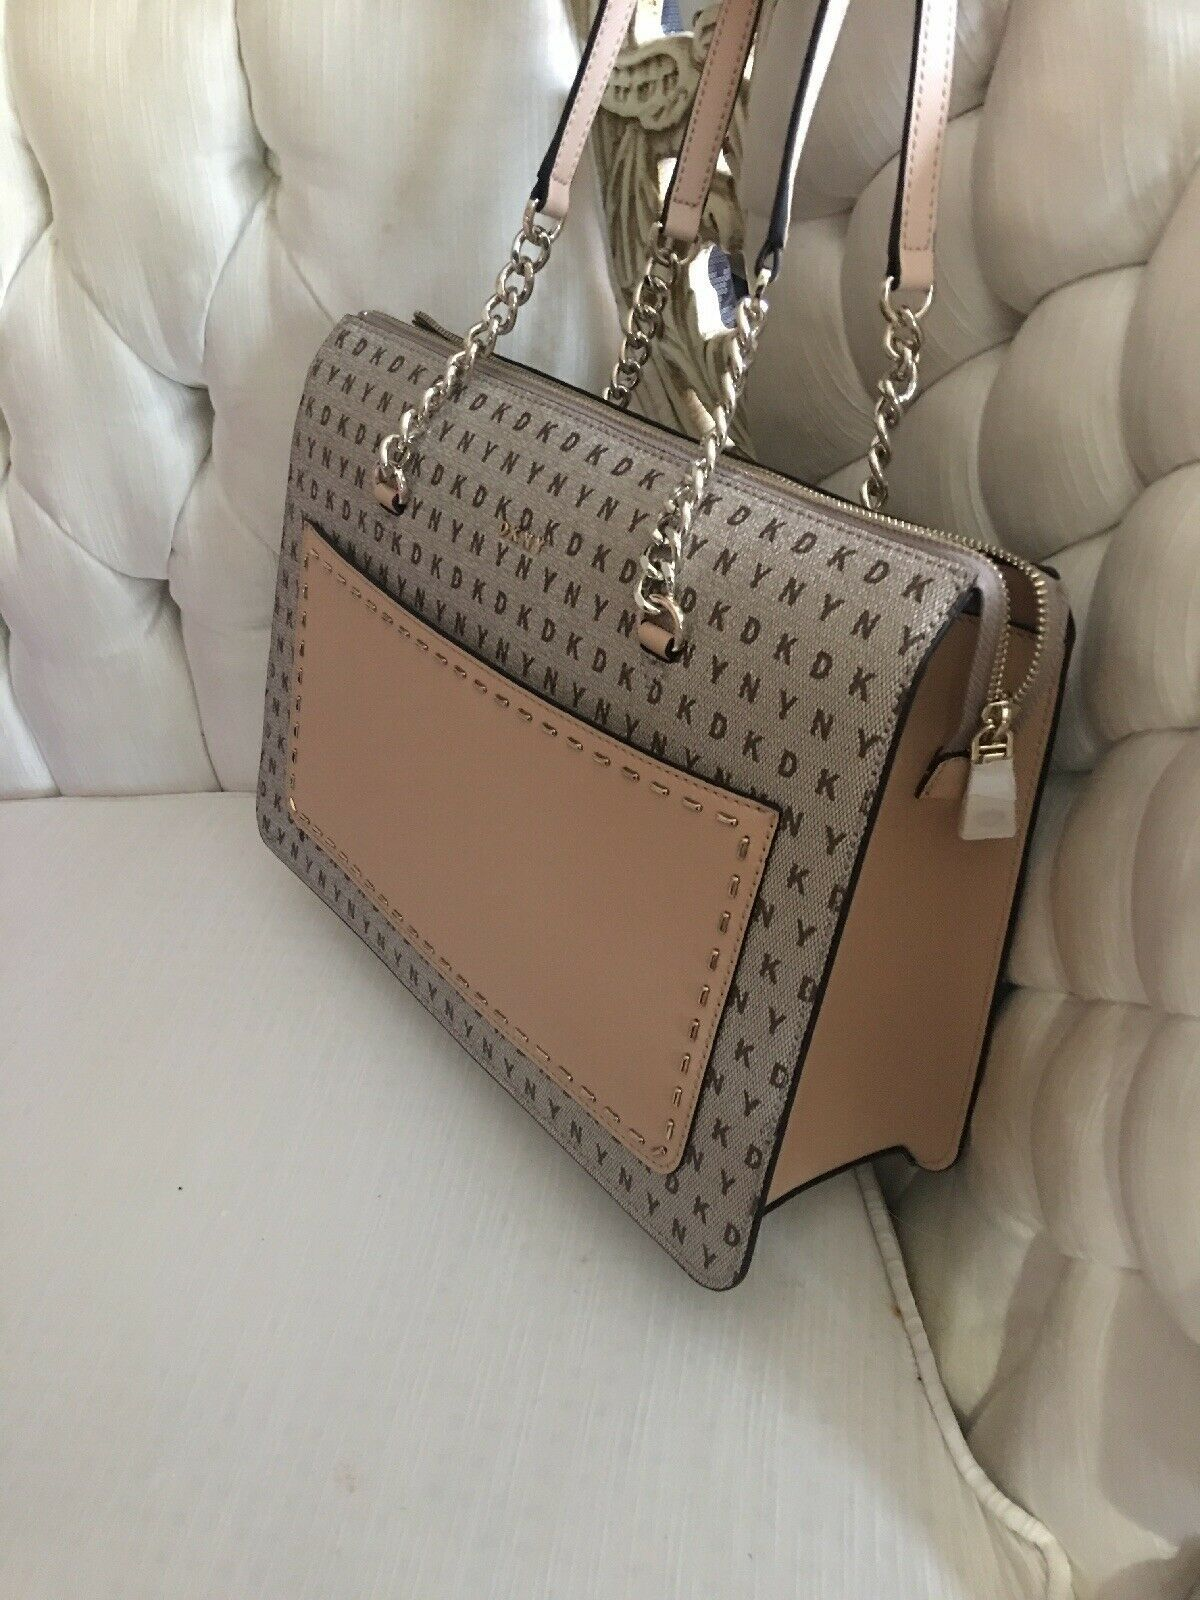 DKNY BRYANT Signature Logo TOP ZIP TOTE Handbag Beige/Nude Faux Leather $248 NEW